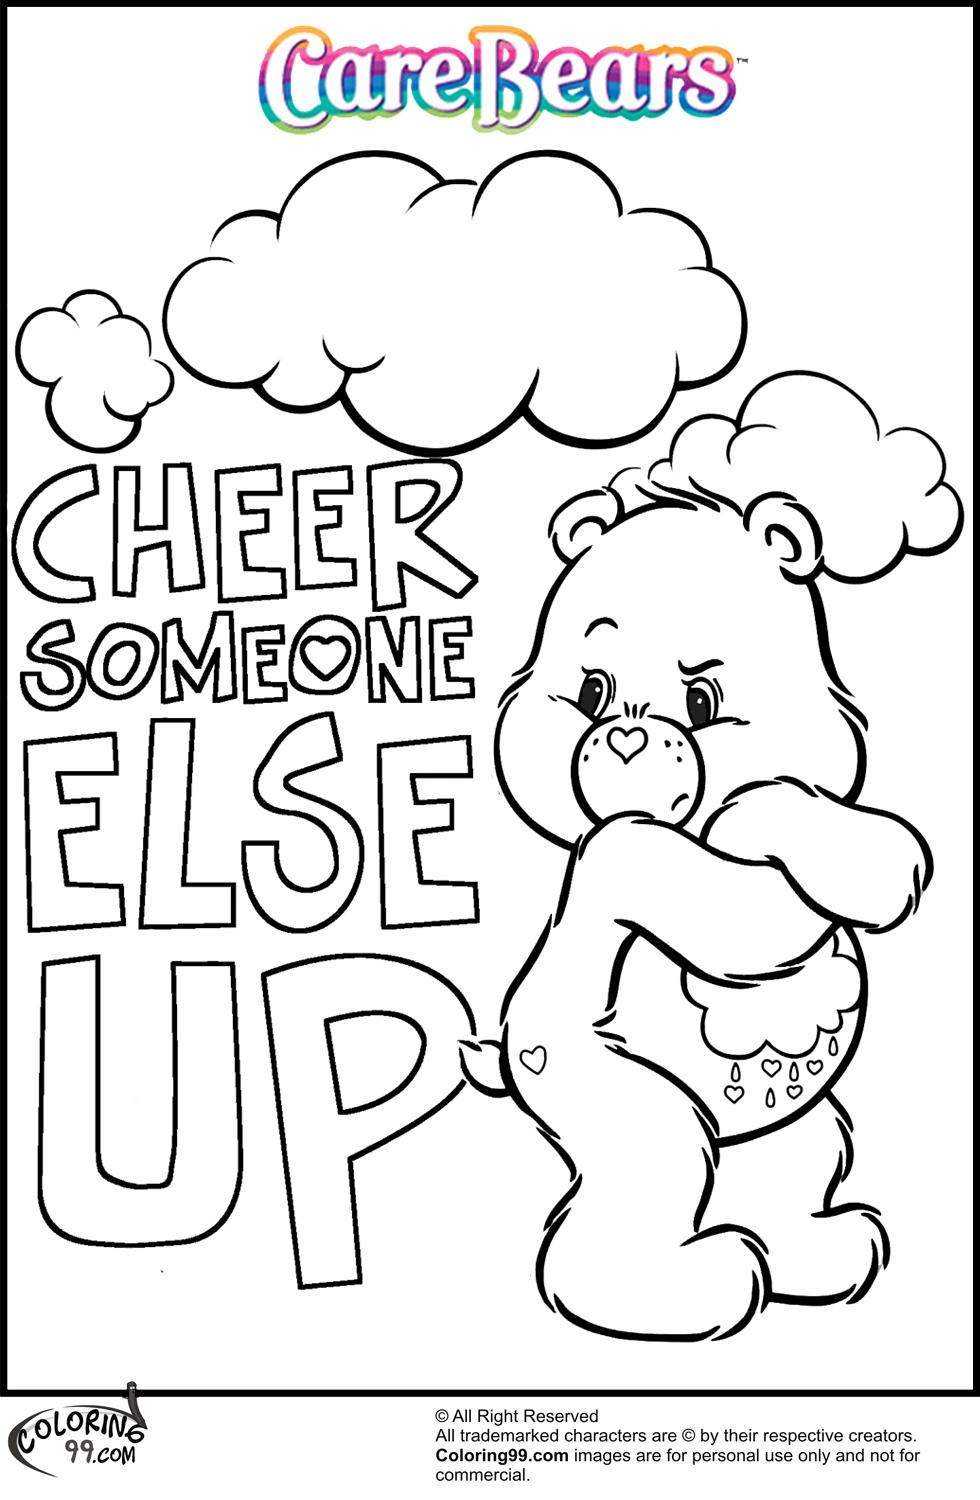 coloring pages of grumpy bear - photo#20